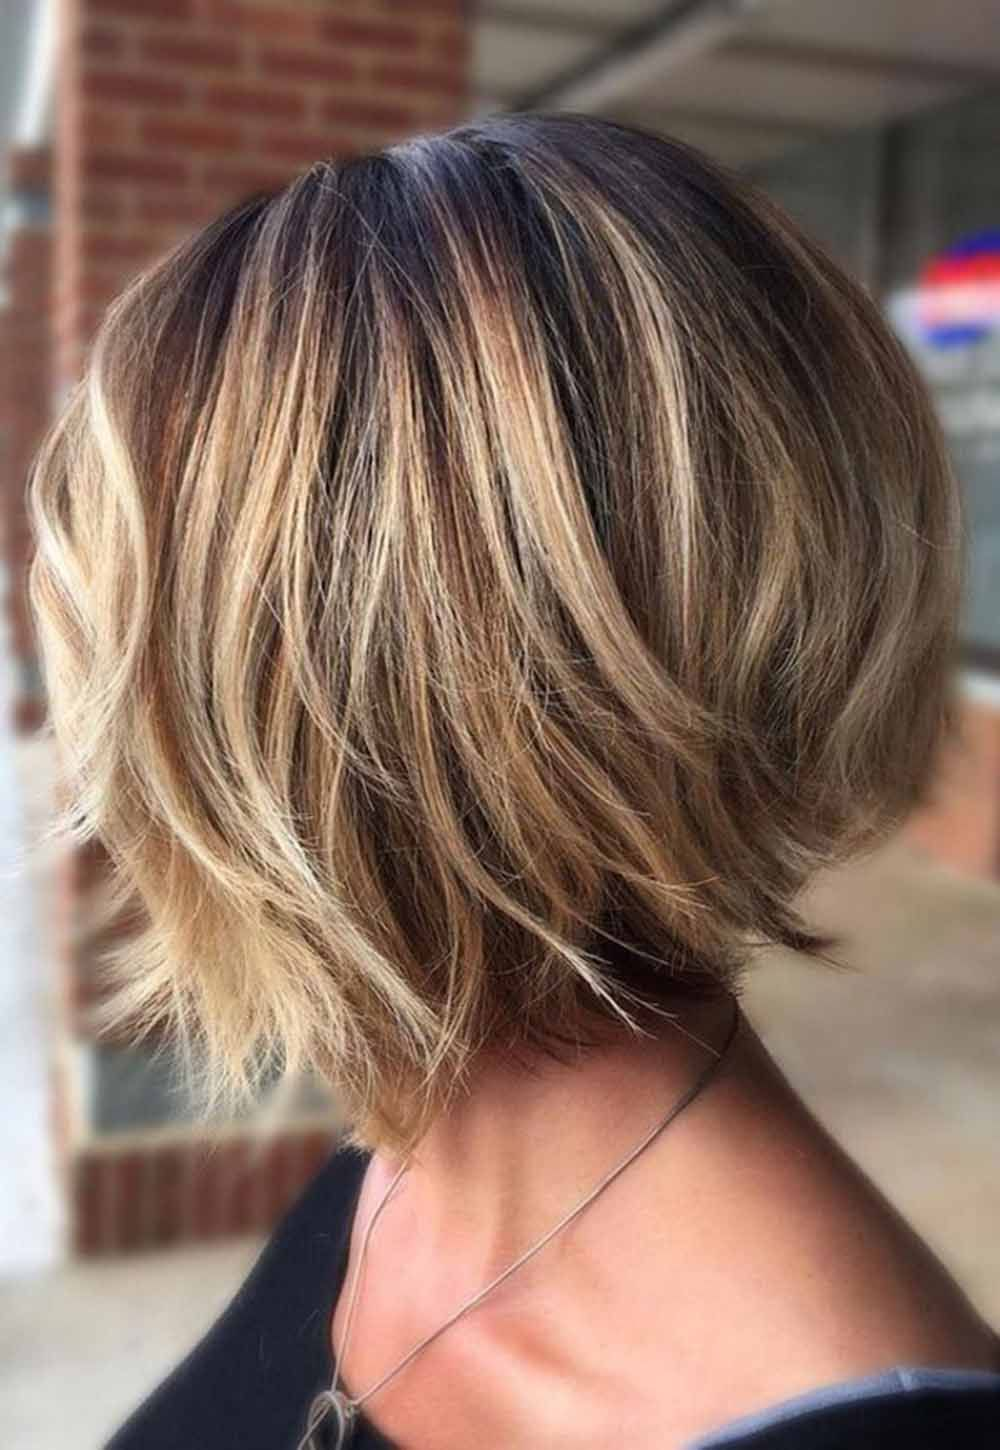 30 Gorgeous Short Bob Hairstyles For Thick Hair 2020 Bob Hairstyles Medium Hair Styles Thick Hair Styles